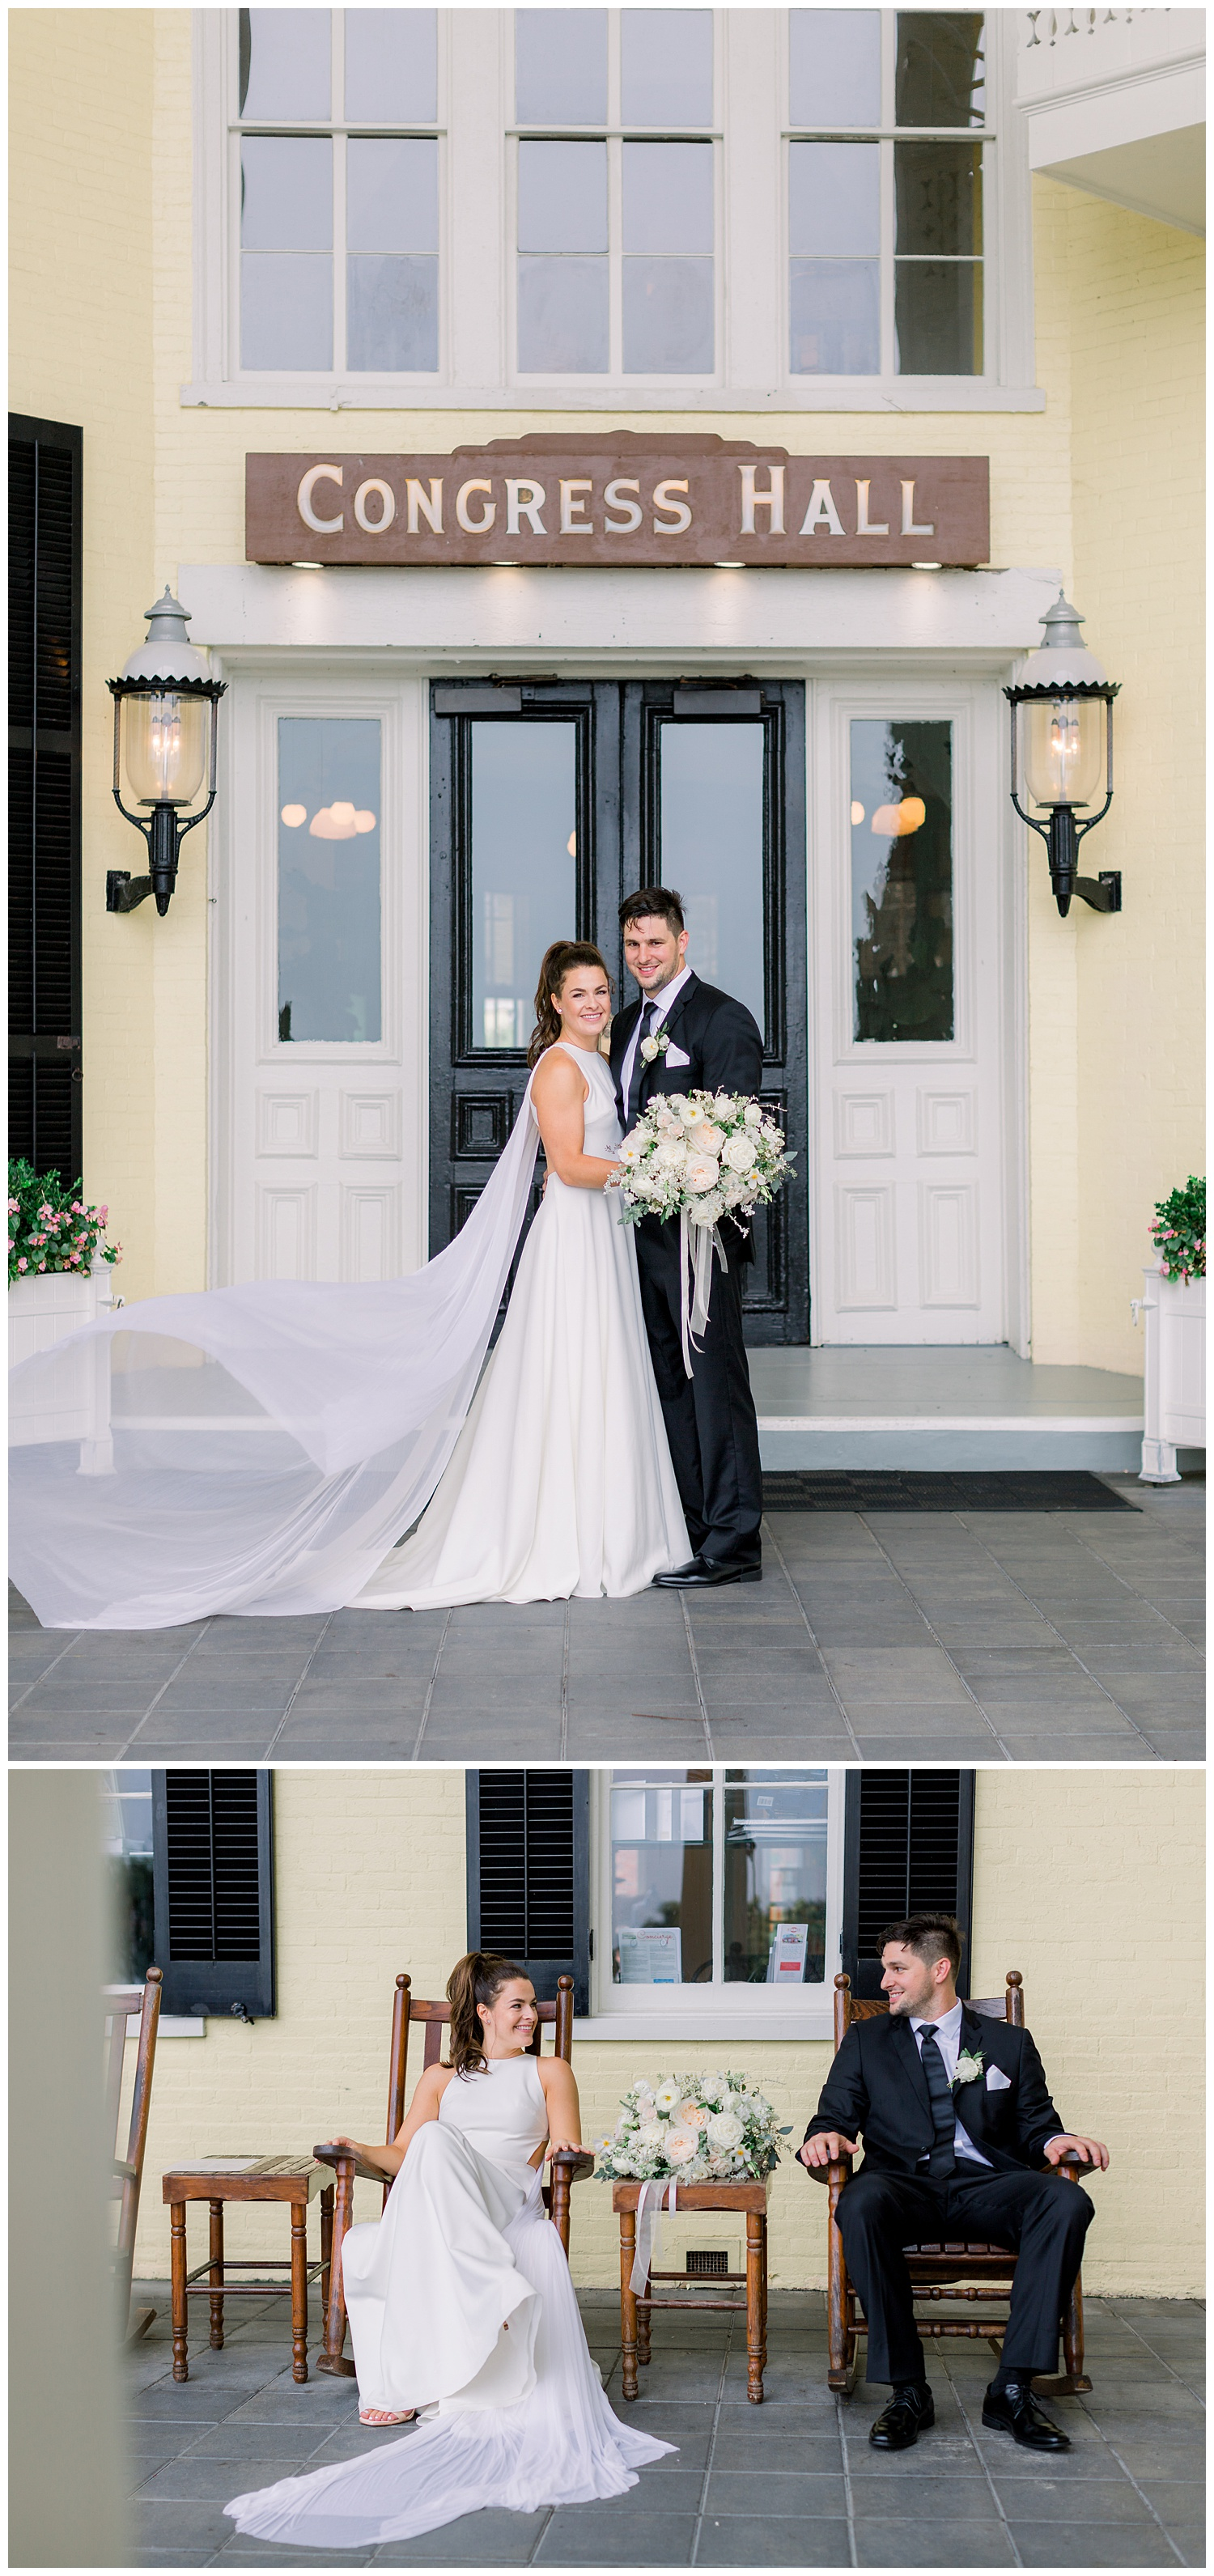 Congress Hall Wedding-Grove Photography_0004.jpg